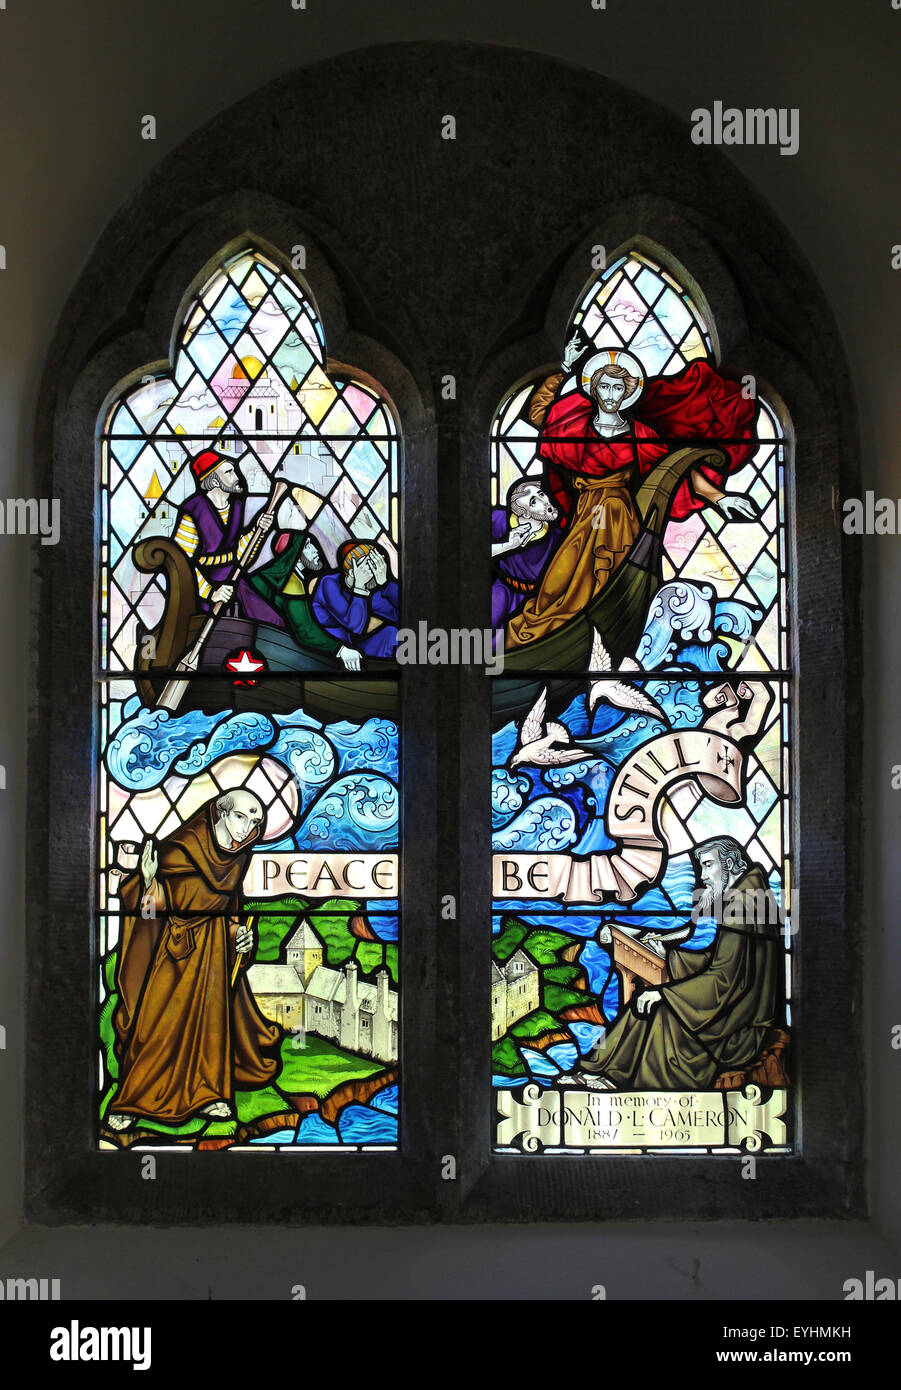 Christ Calming the Storm with St Seiriol and St Cybi, Church of St Seiriol, Penmon, Anglesey north wall of the chancel - Stock Image